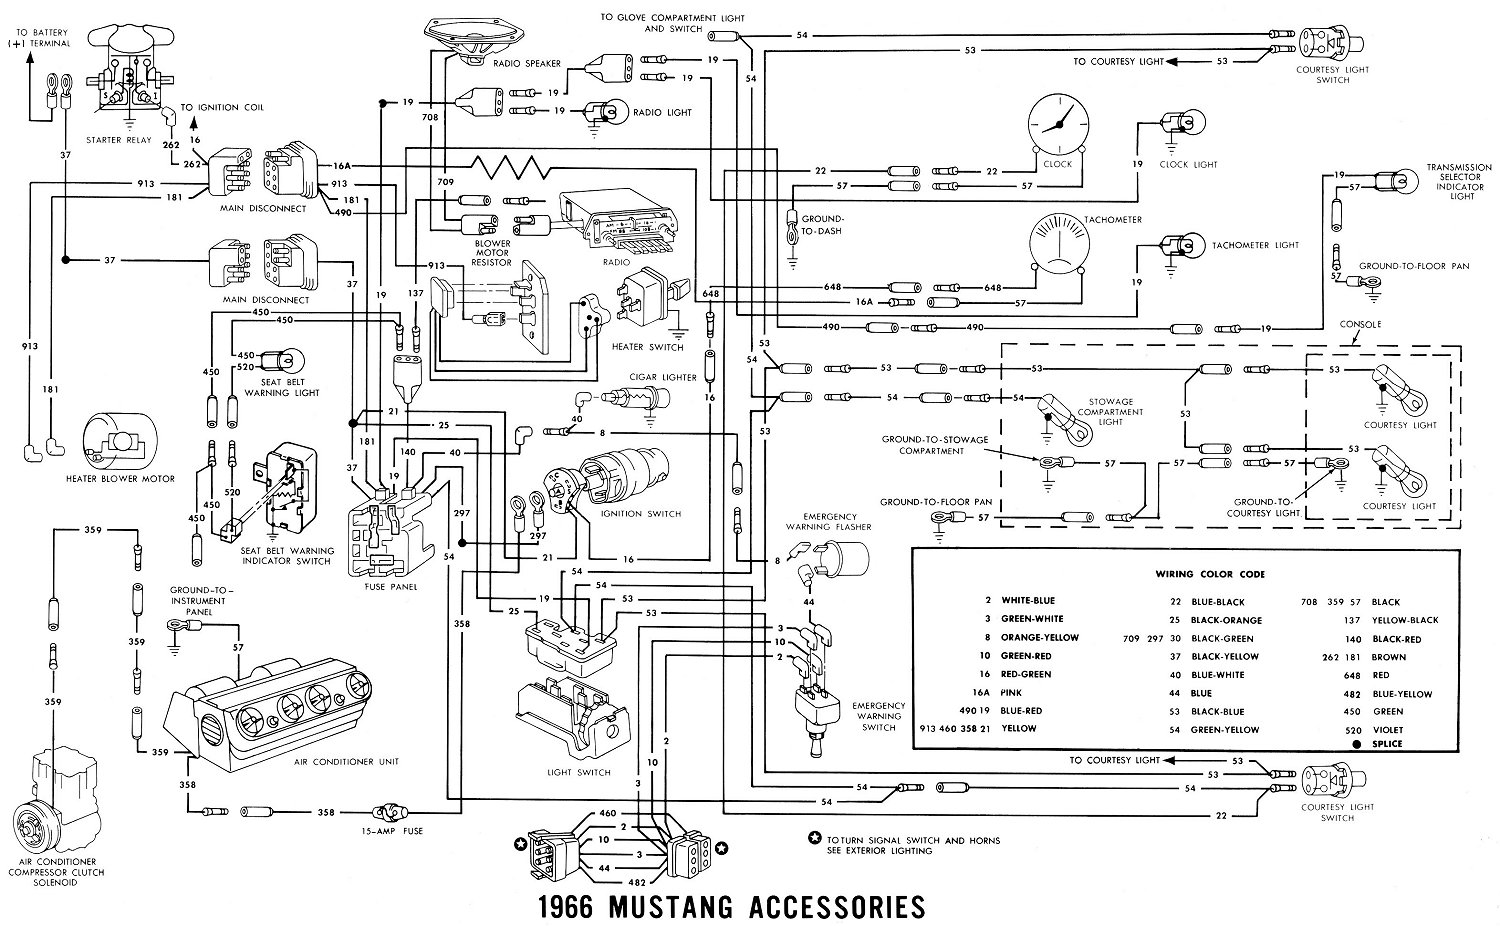 66acces1 1966 mustang wiring diagrams average joe restoration 2007 Mustang Wiring Diagram at reclaimingppi.co